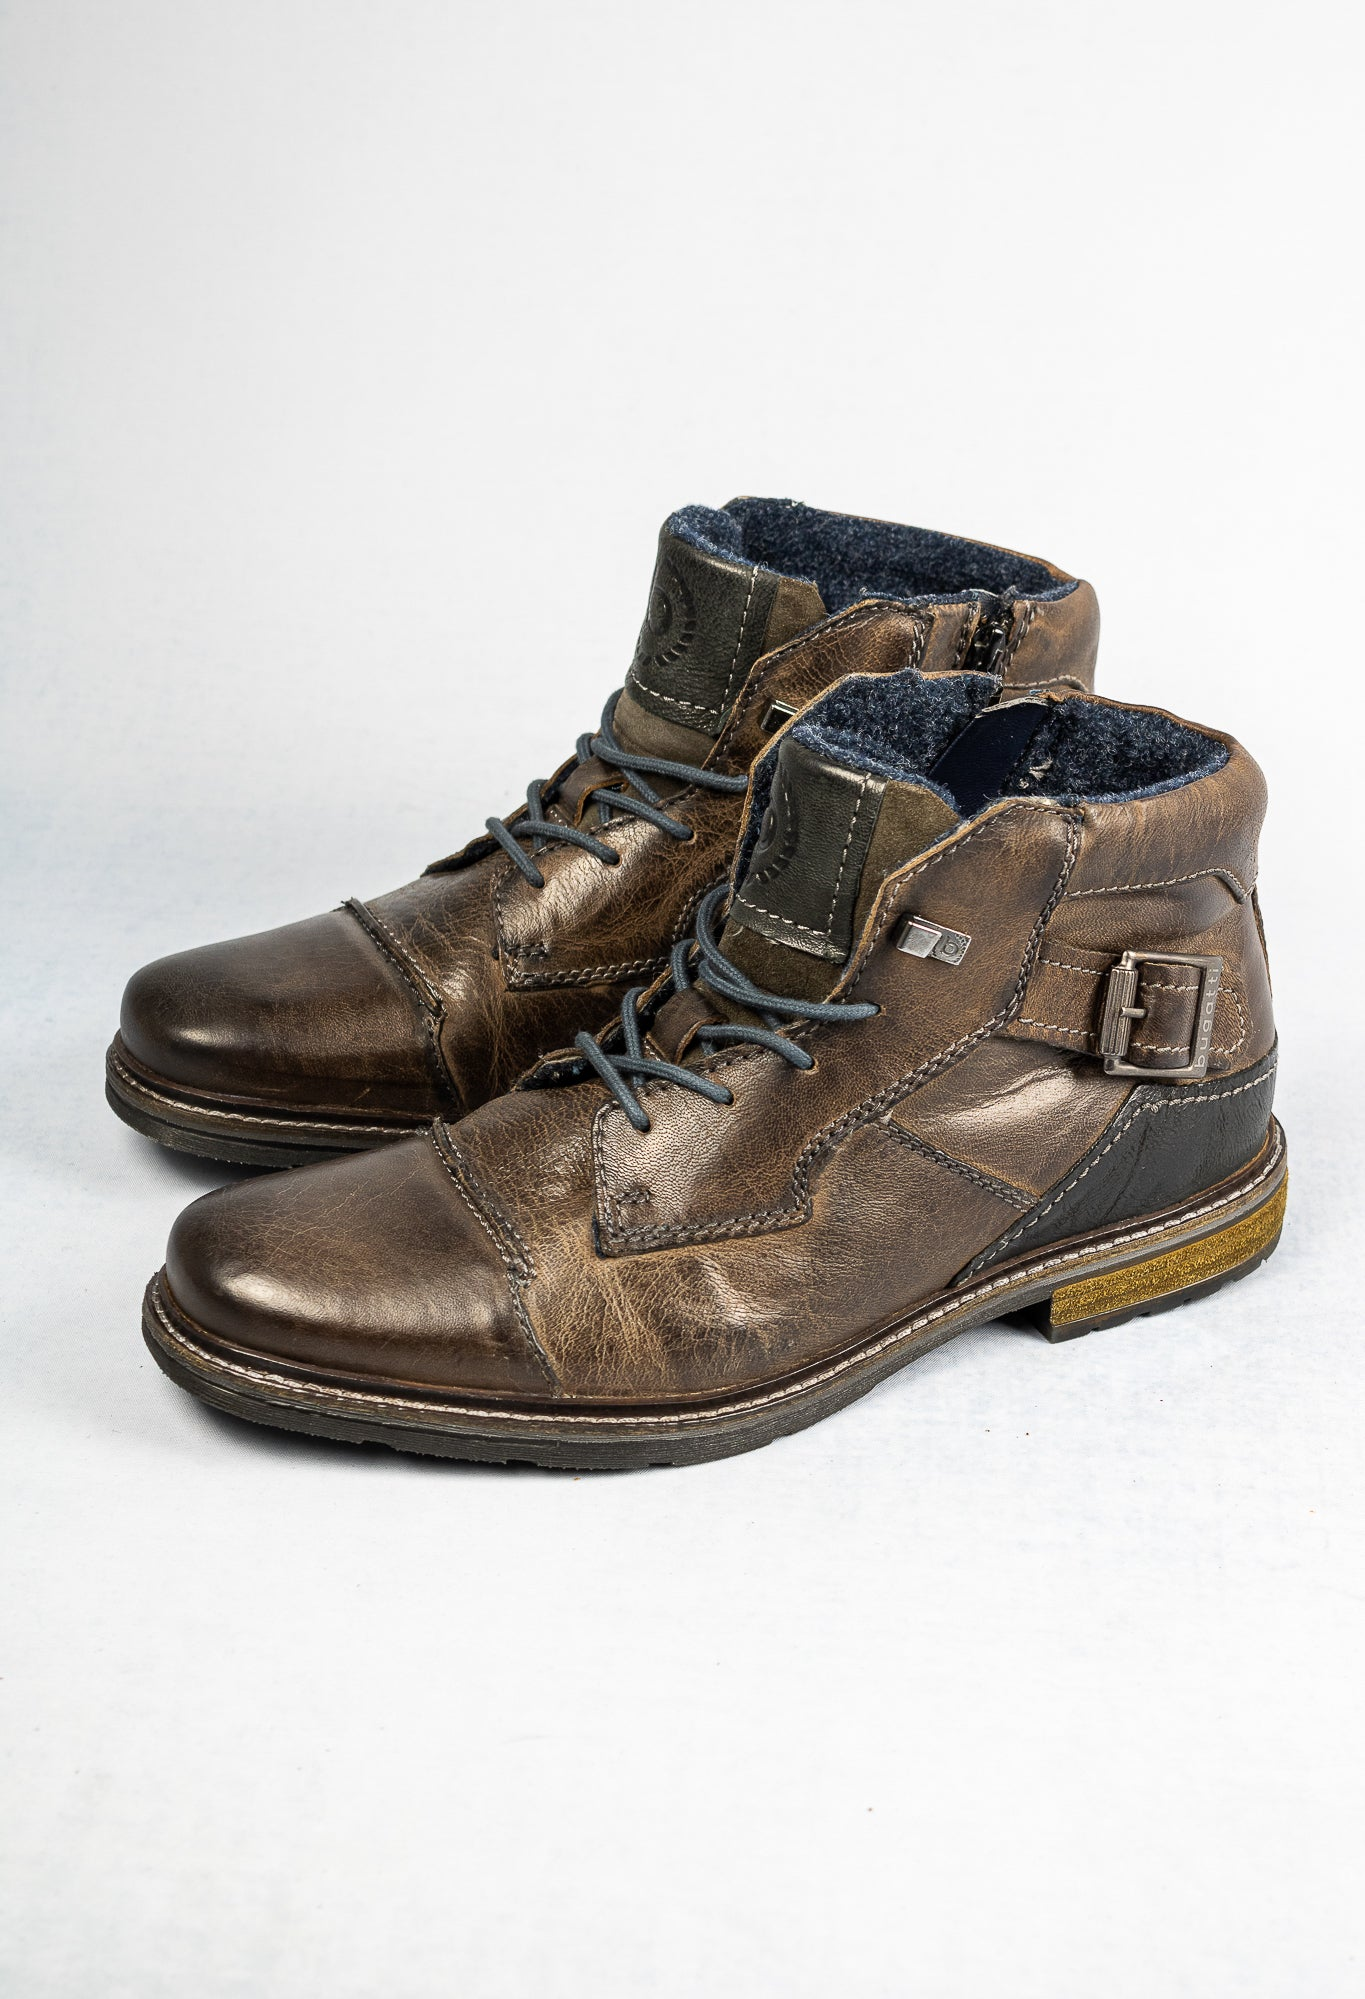 Bugatti Vandal 321-62238-3200 1100 Dark Grey Leather Men's Boots for sale online ireland